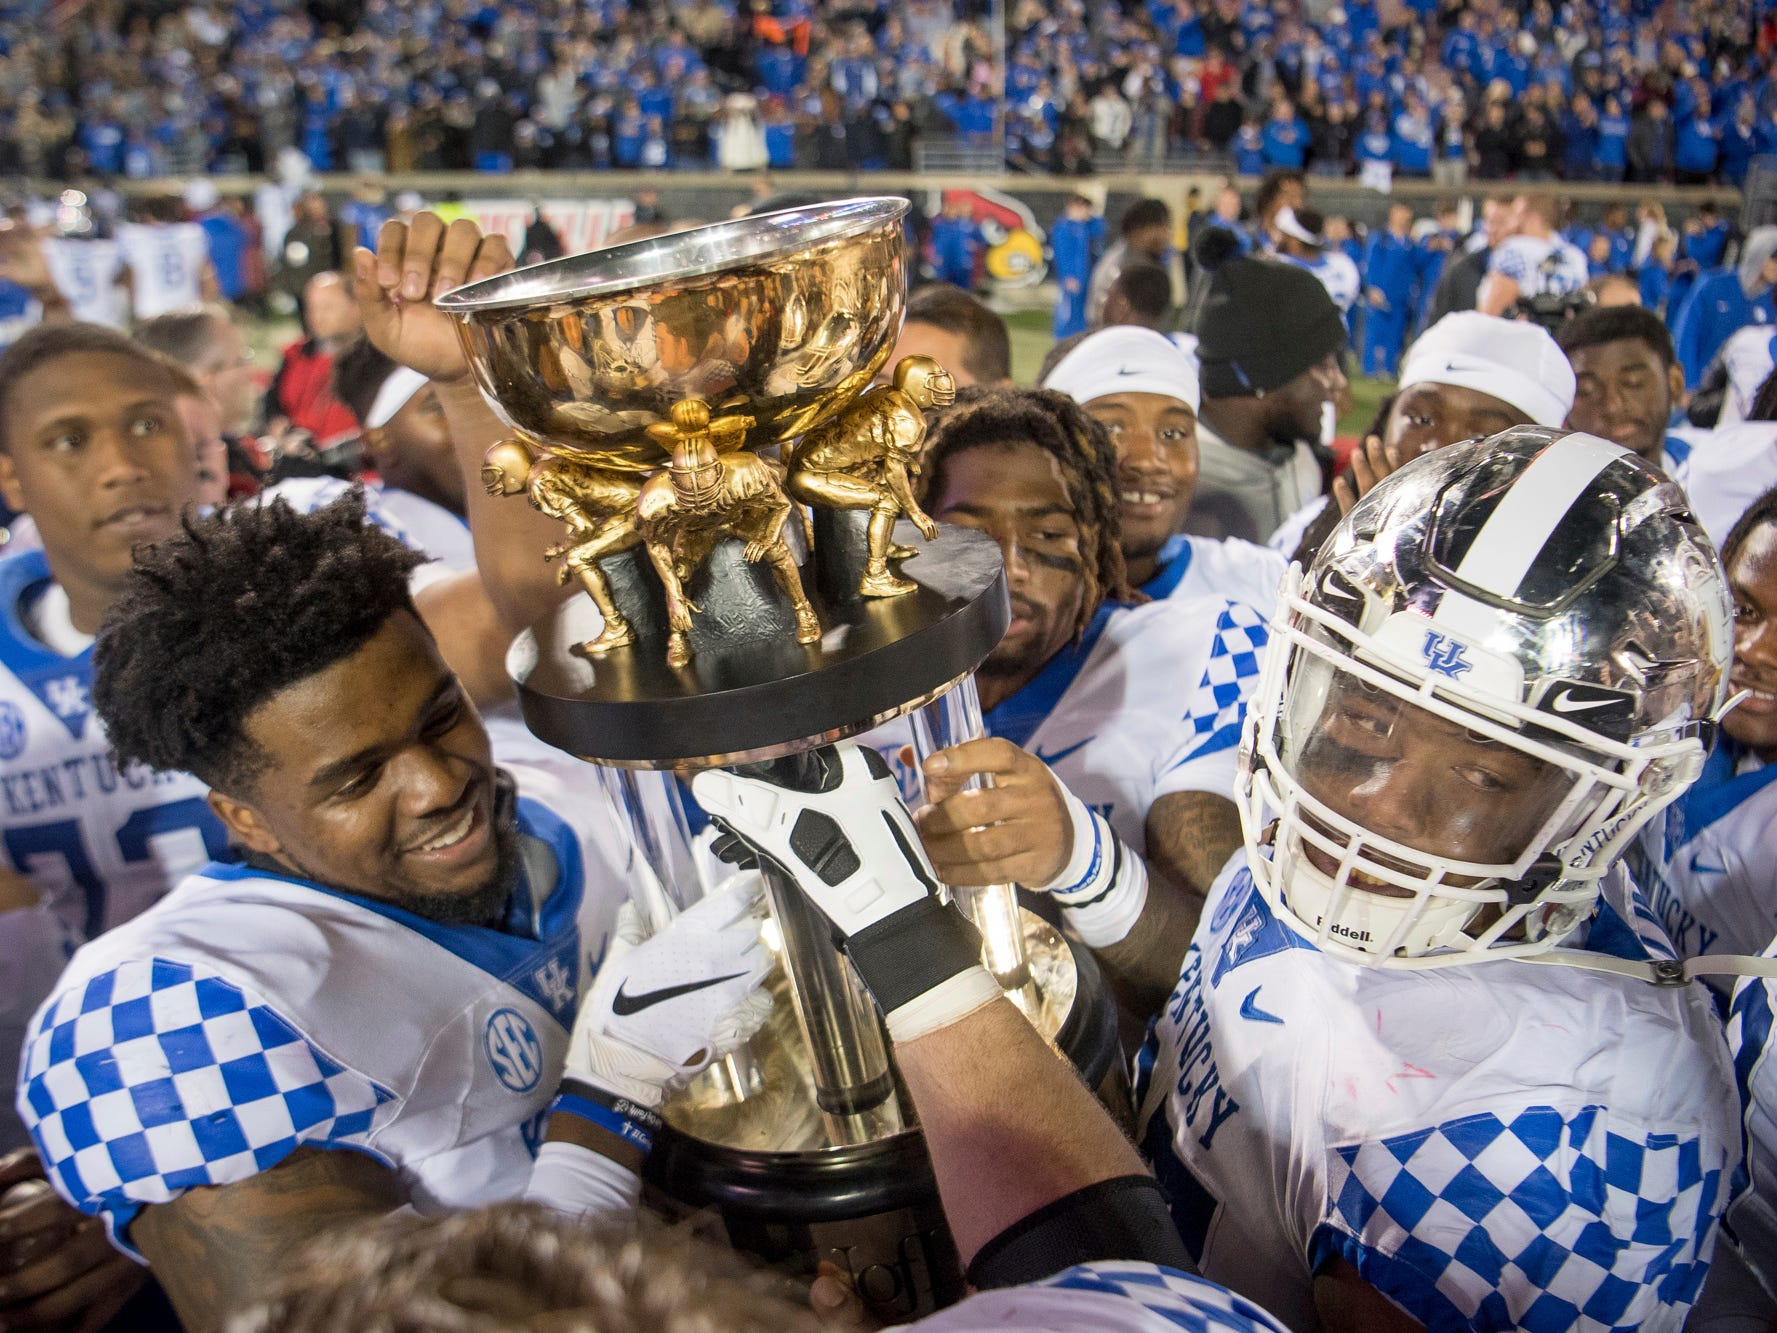 Governor's Cup: Kentucky players hoist the Governor's Cup after a 56-10 win over Louisville on Nov. 24.